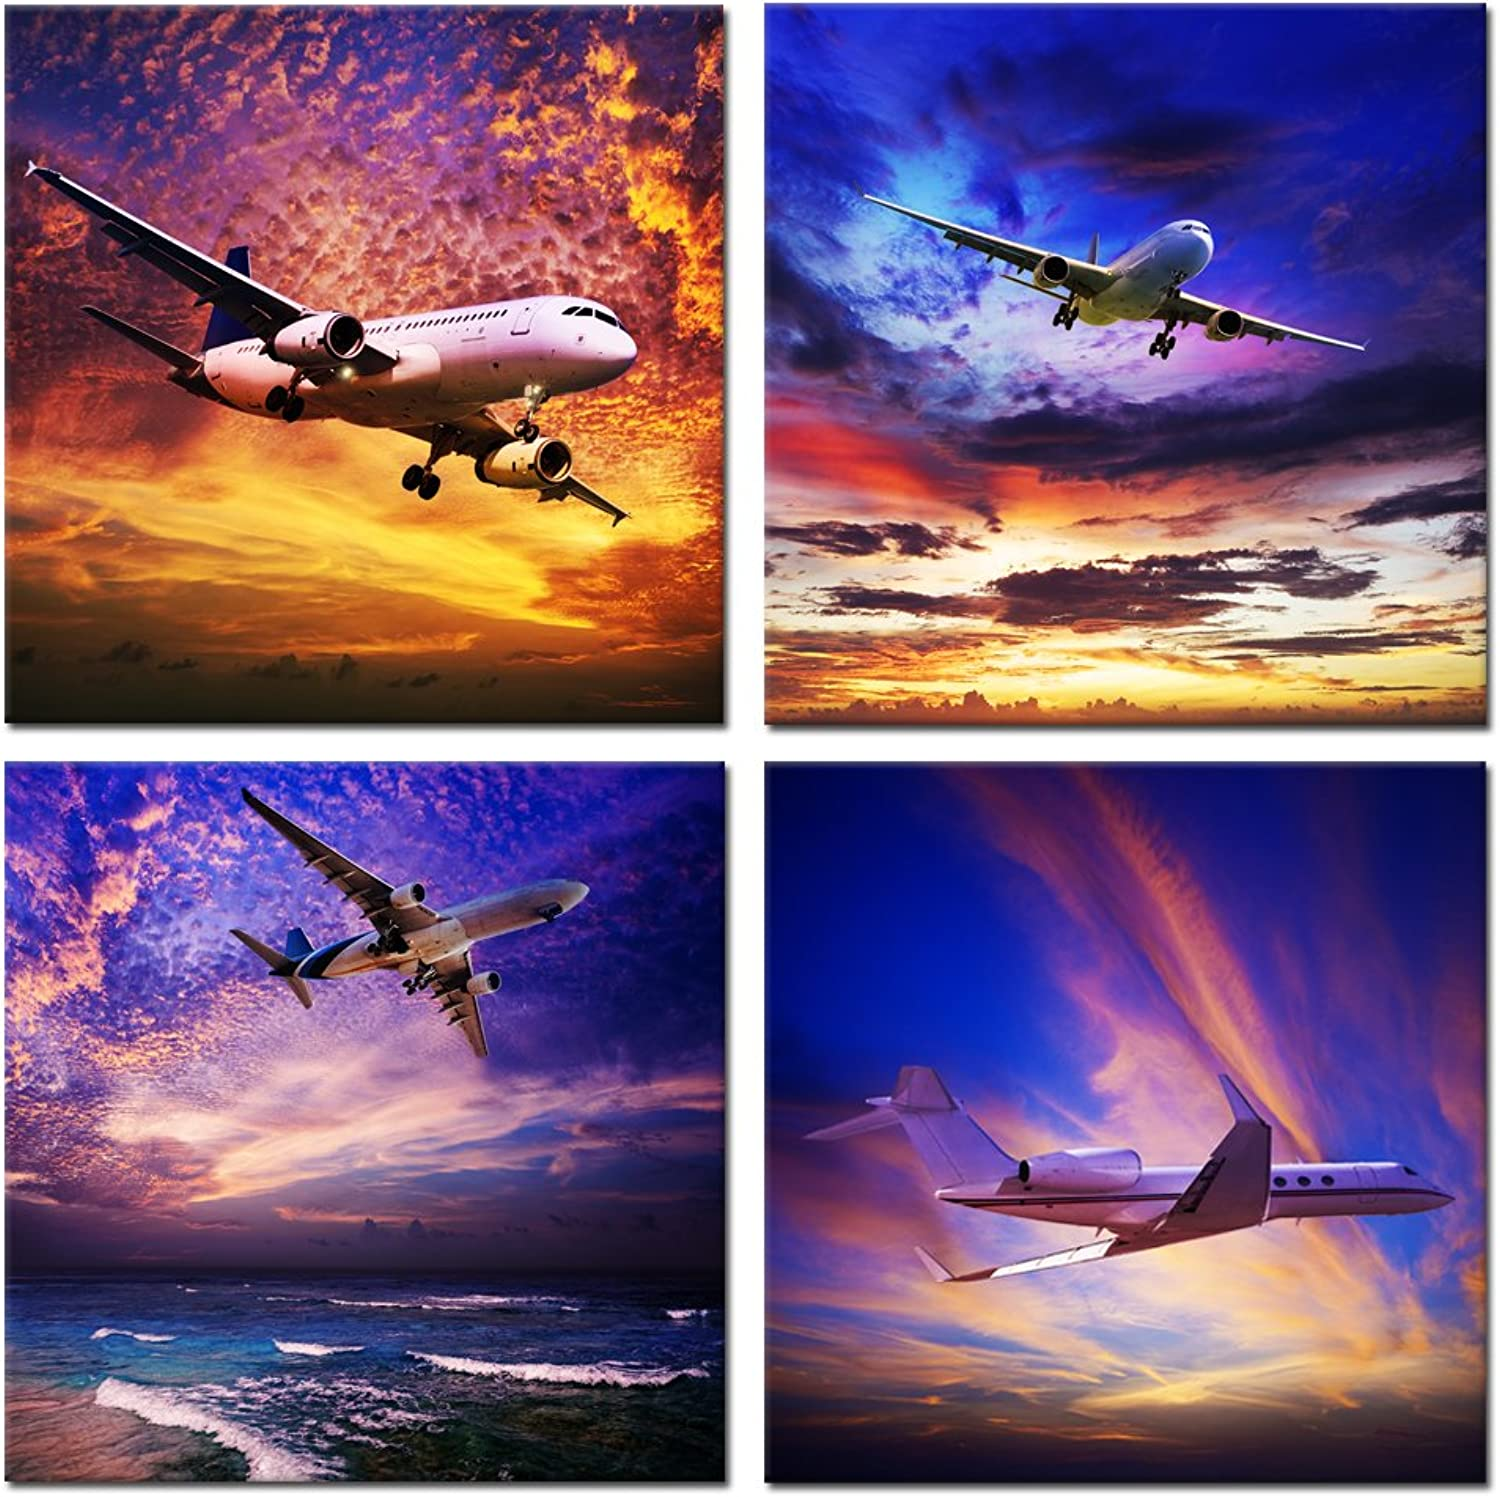 Kreative Arts - 4 Piece Canvas Prints Wall Art Jet Plane Landing at Sunset Sky Pictures Paintings Modern Gallery Wrapped Giclee Airplane Artwork for Living Room Home Decor (16x16inchx4pcs set)